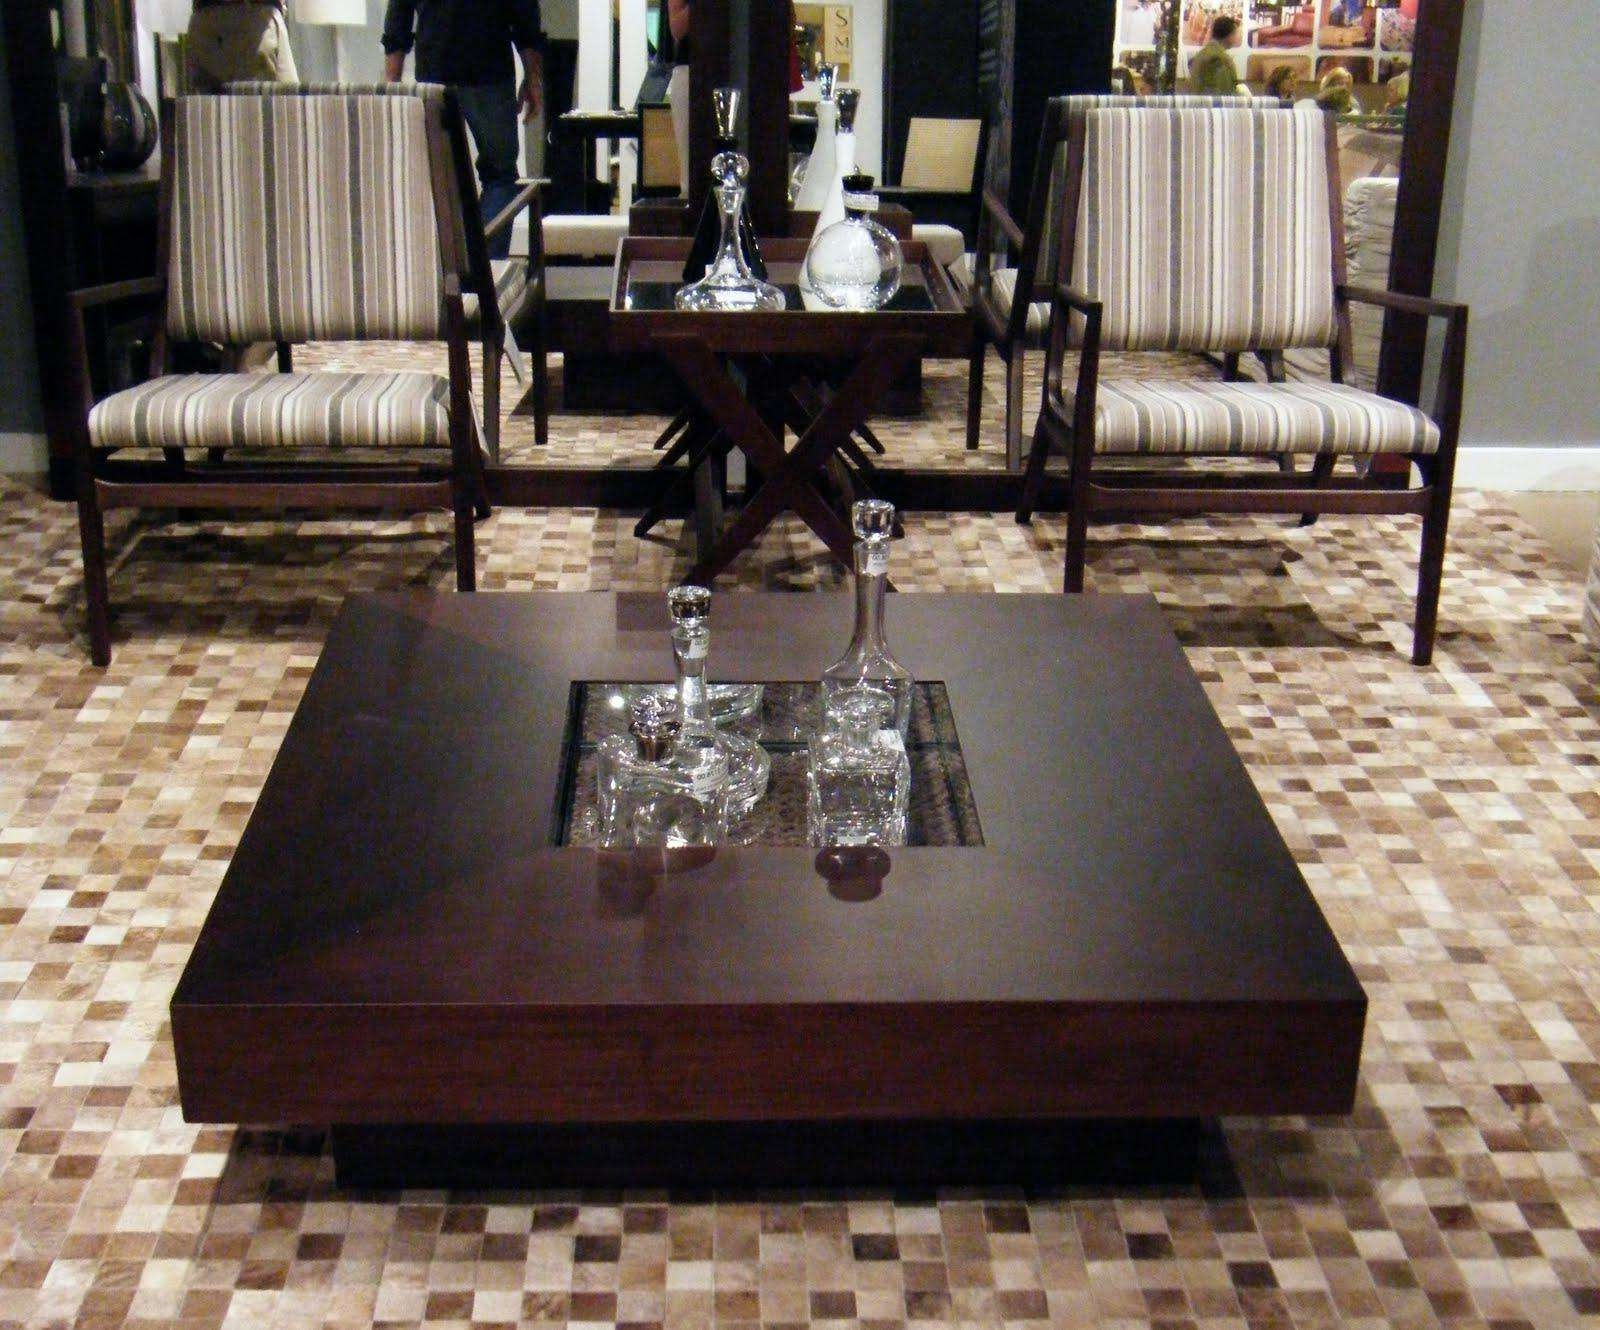 Square Shaped Coffee Table Material Plastic Acrylic Style Glam With Fashionable Square Shaped Coffee Tables (View 3 of 20)